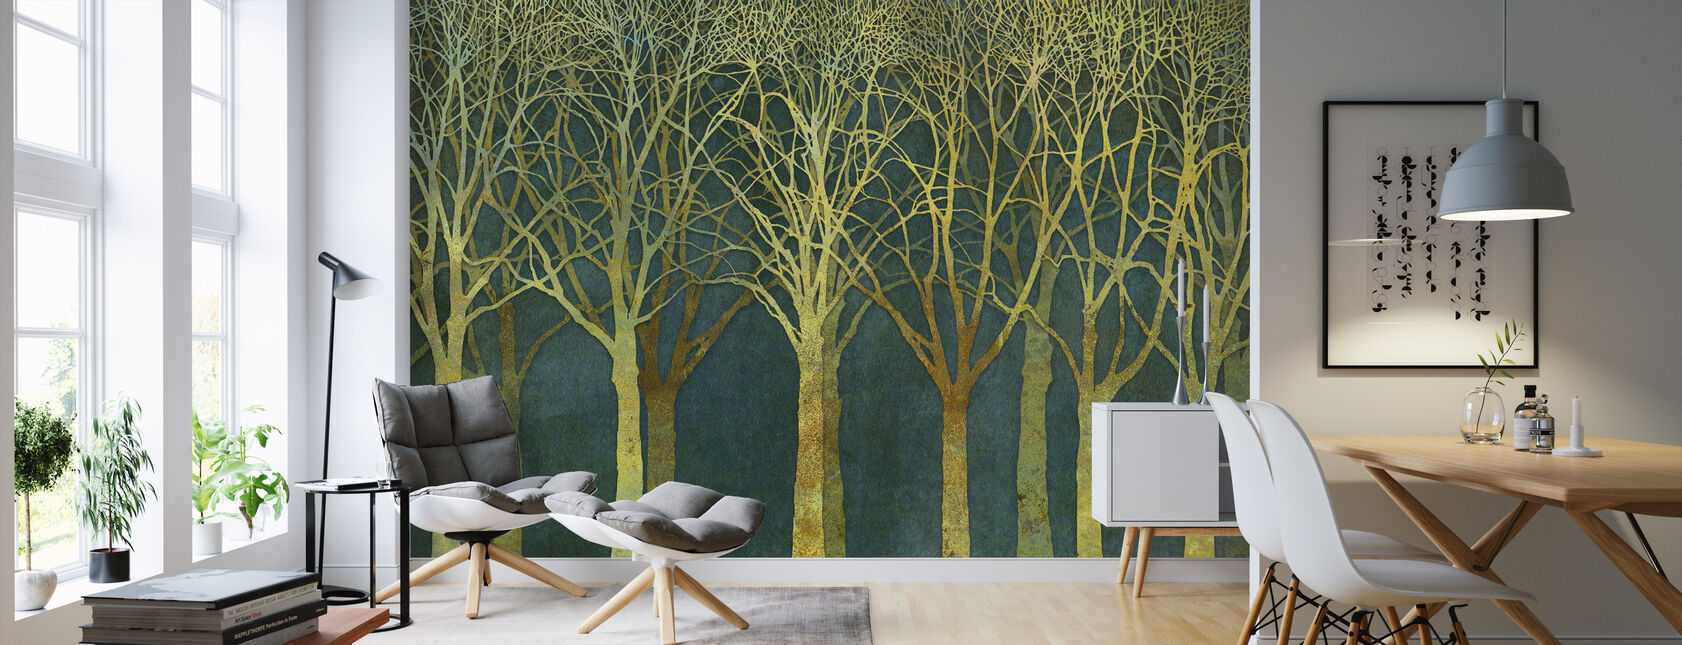 Birch Grove Golden Light - Wallpaper - Living Room